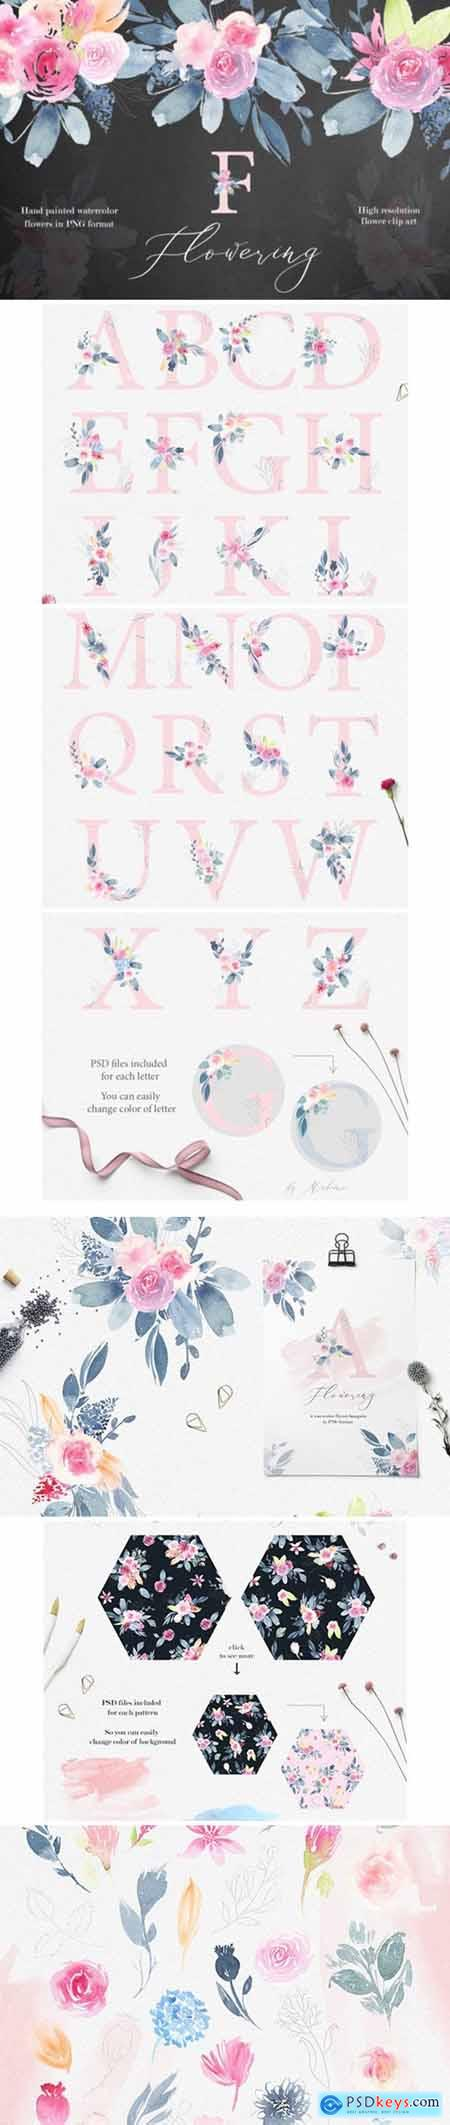 Flowering Watercolor Graphic Set 2194165